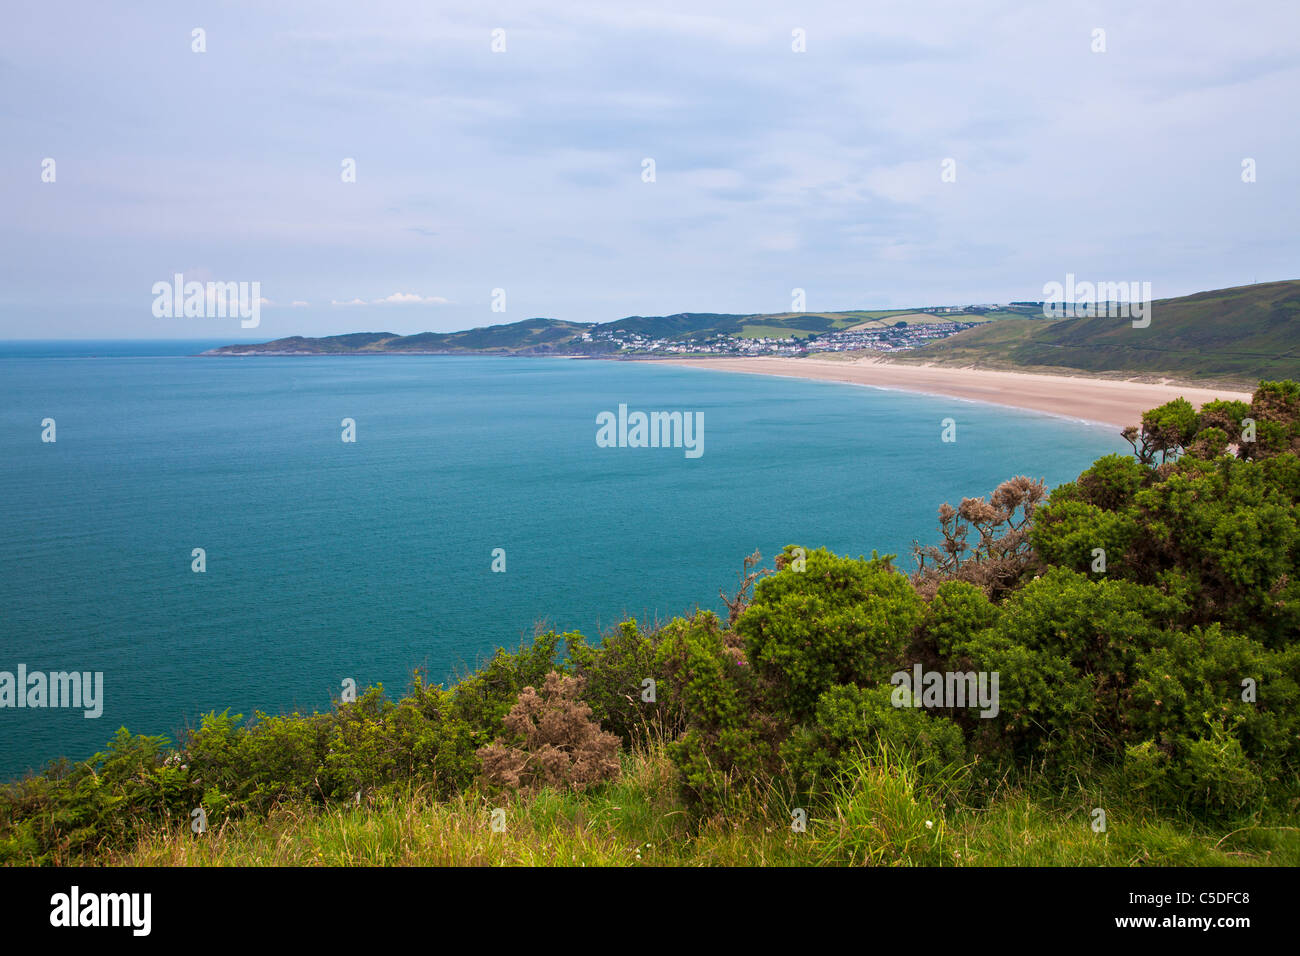 View towards Woolacombe and Woolacombe Sands taken from the coastal path near Croyde, North Devon, England, UK - Stock Image